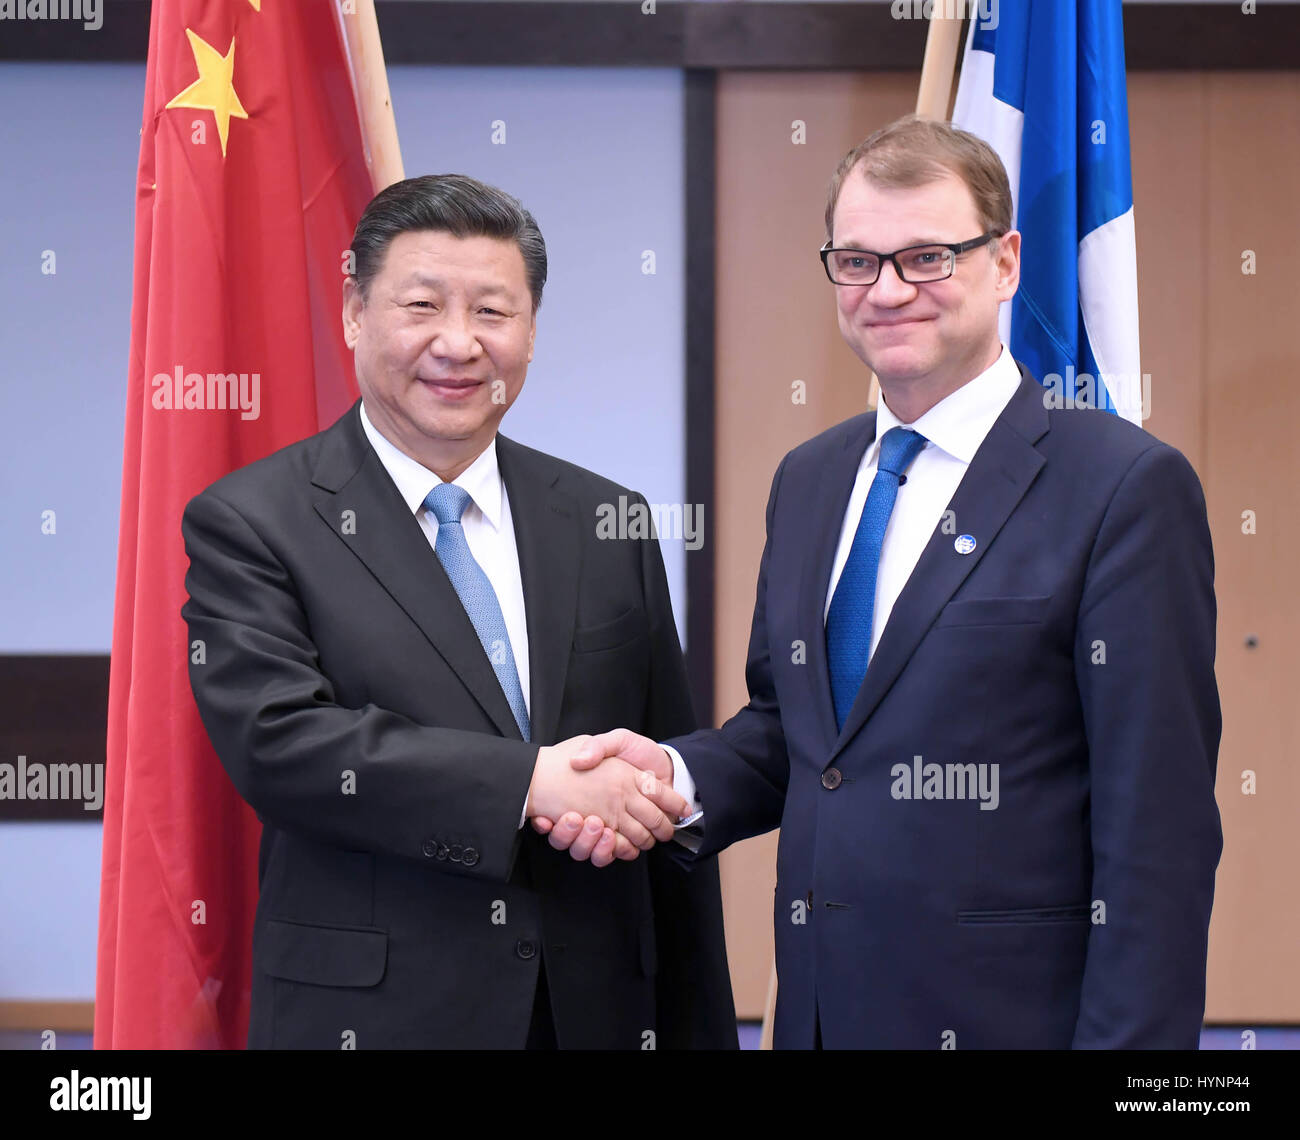 Helsinki, Finland. 5th Apr, 2017. Chinese President Xi Jinping (L) meets with Finnish Prime Minister Juha Sipila Stock Photo